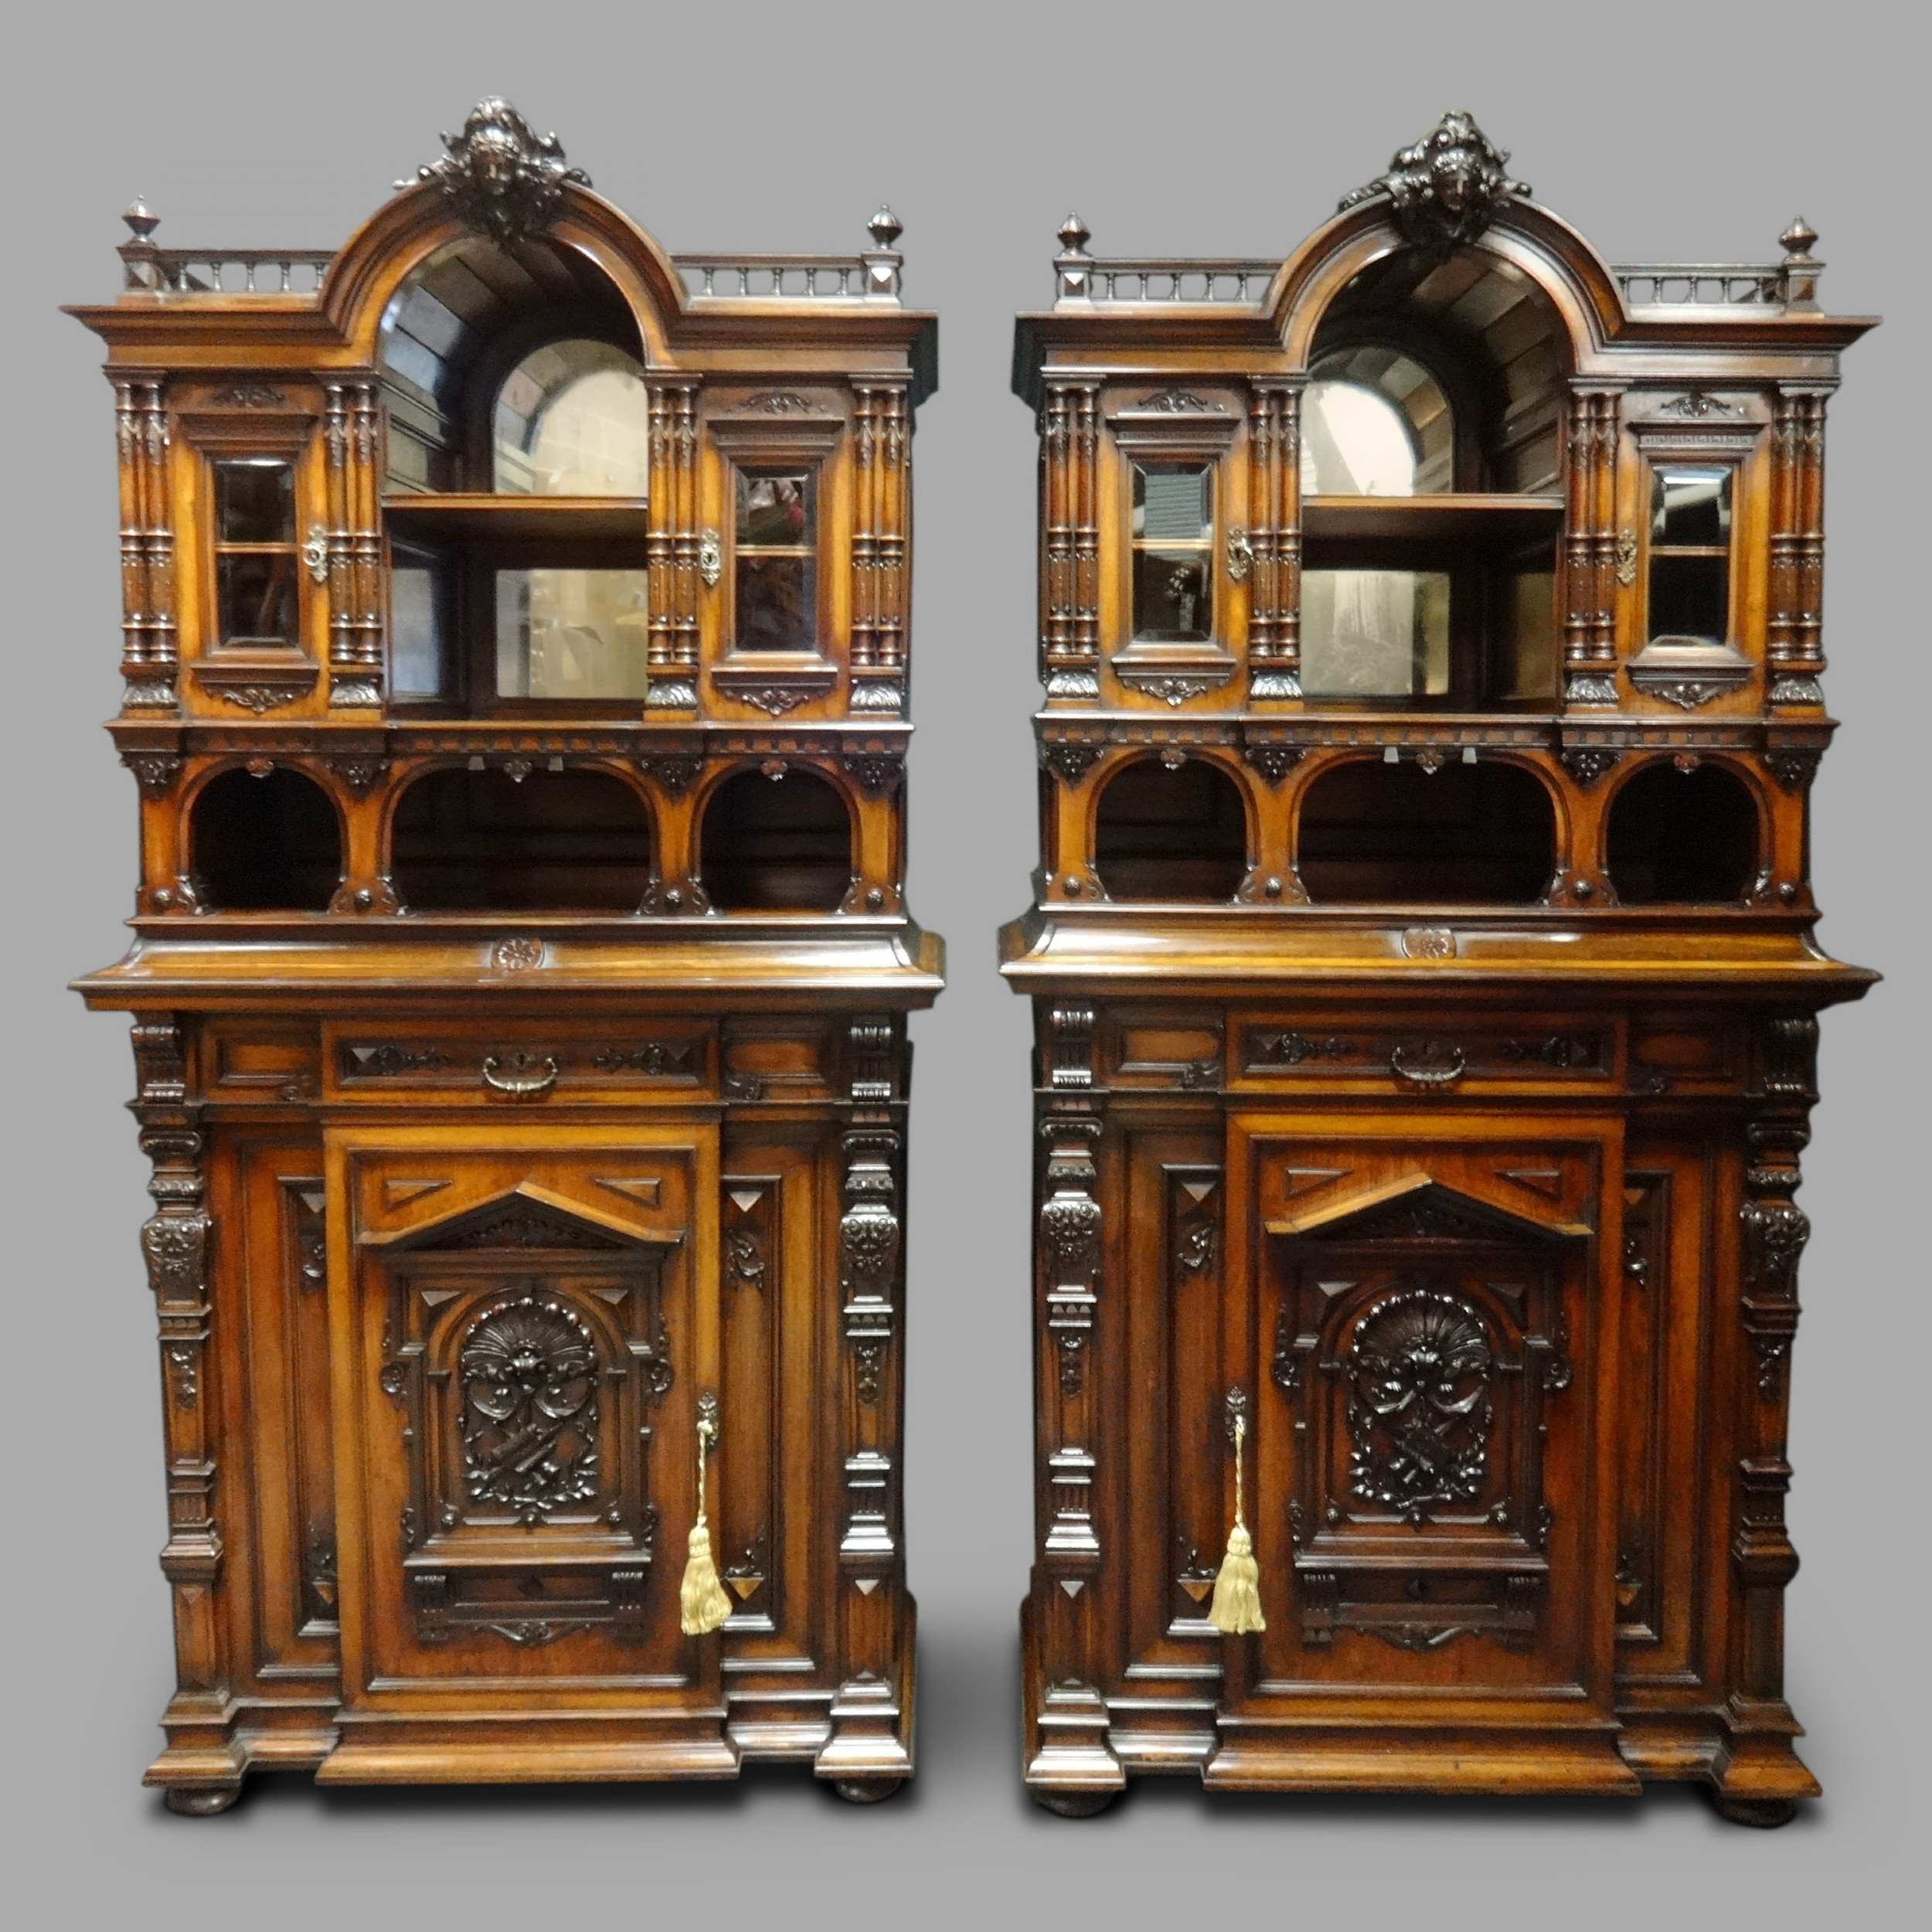 magnificent pair of rosewood cabinets by 'sigmund jaray wien'